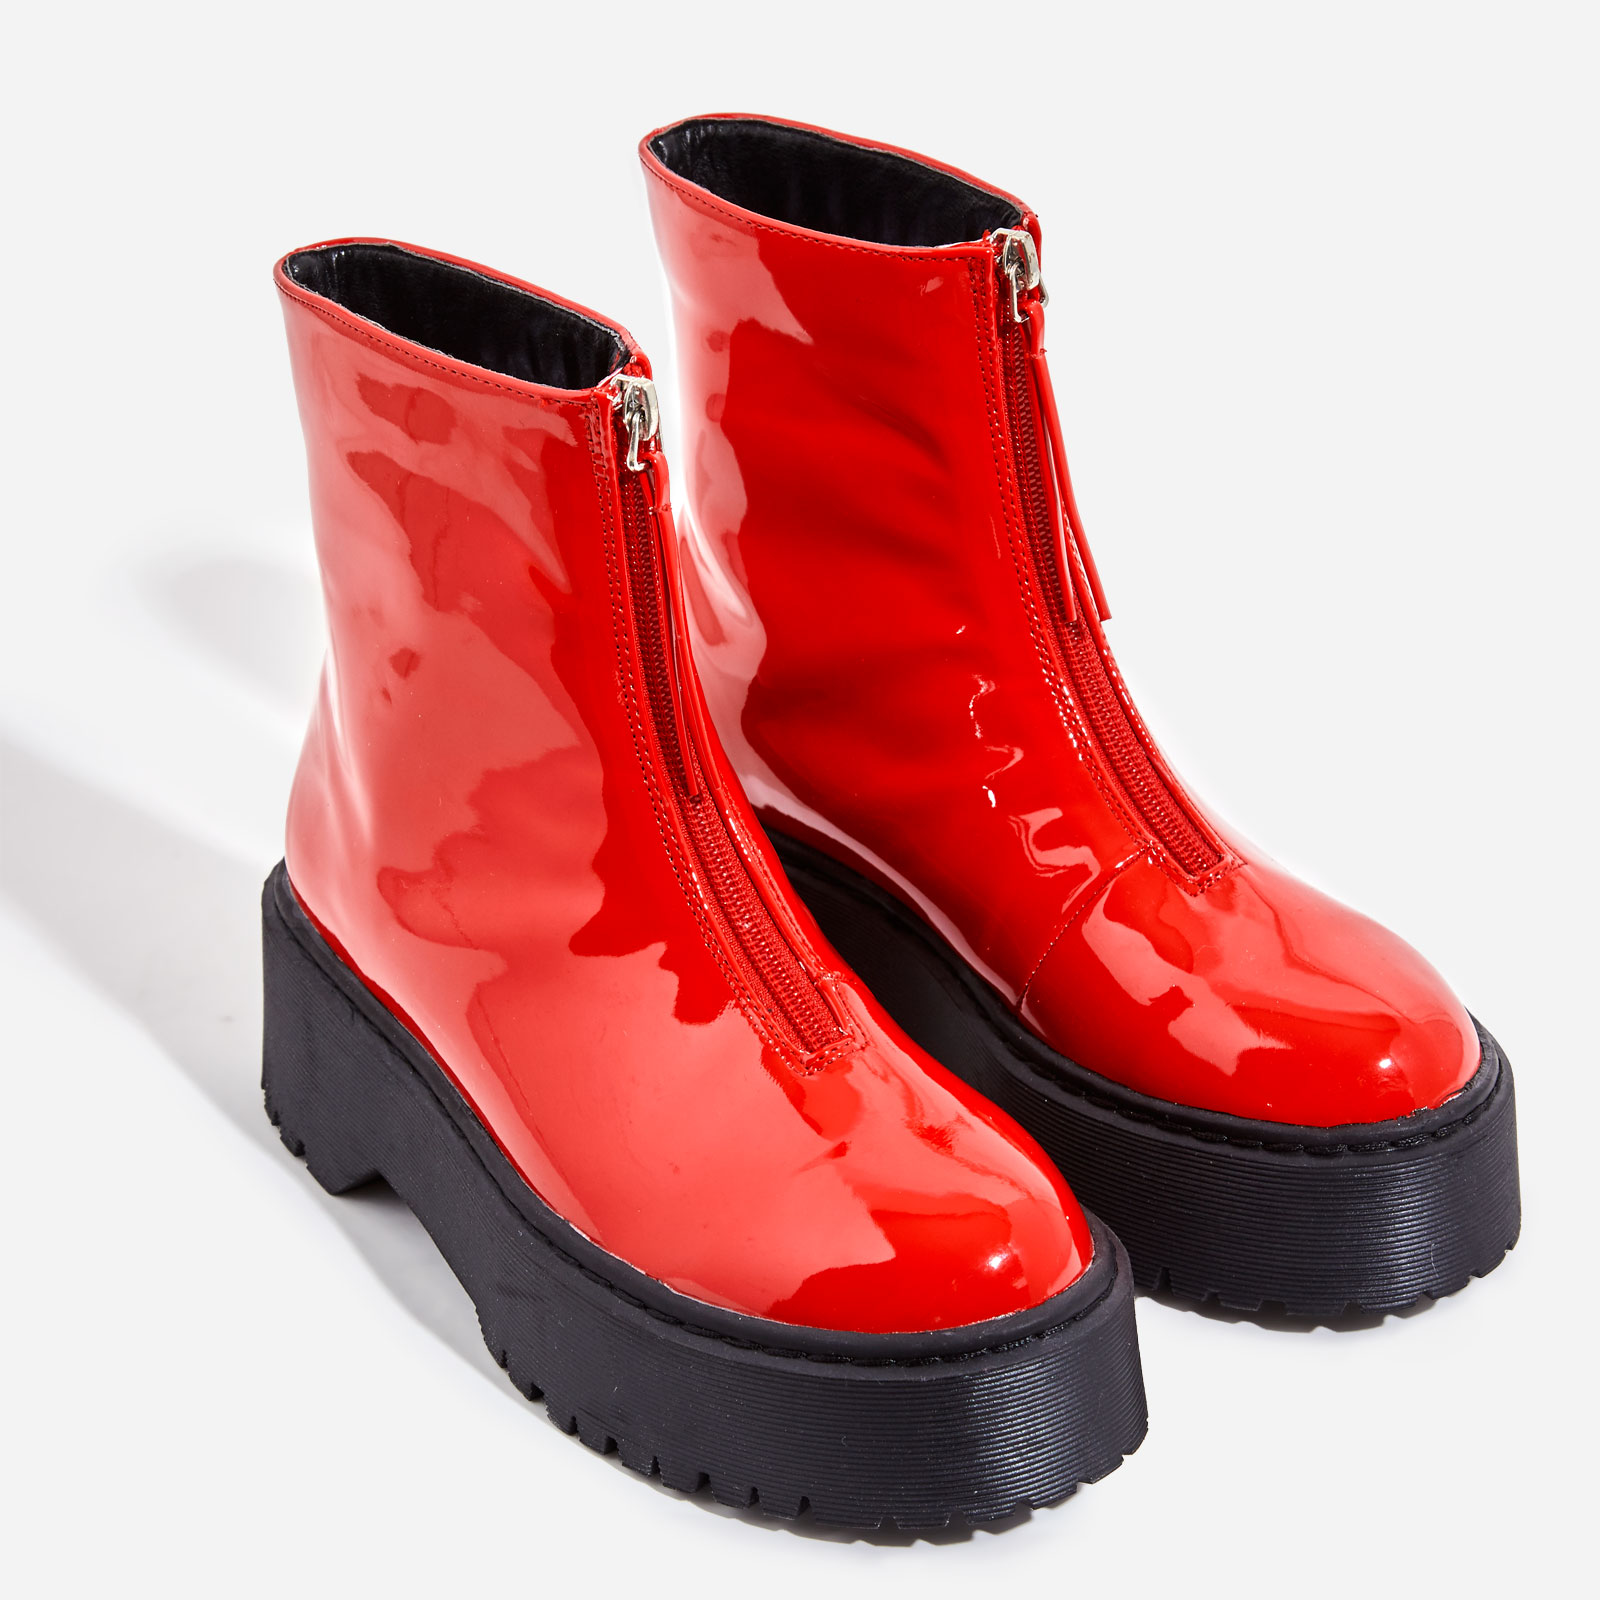 Centre Zip Detail Ankle Biker Boots In Red Patent